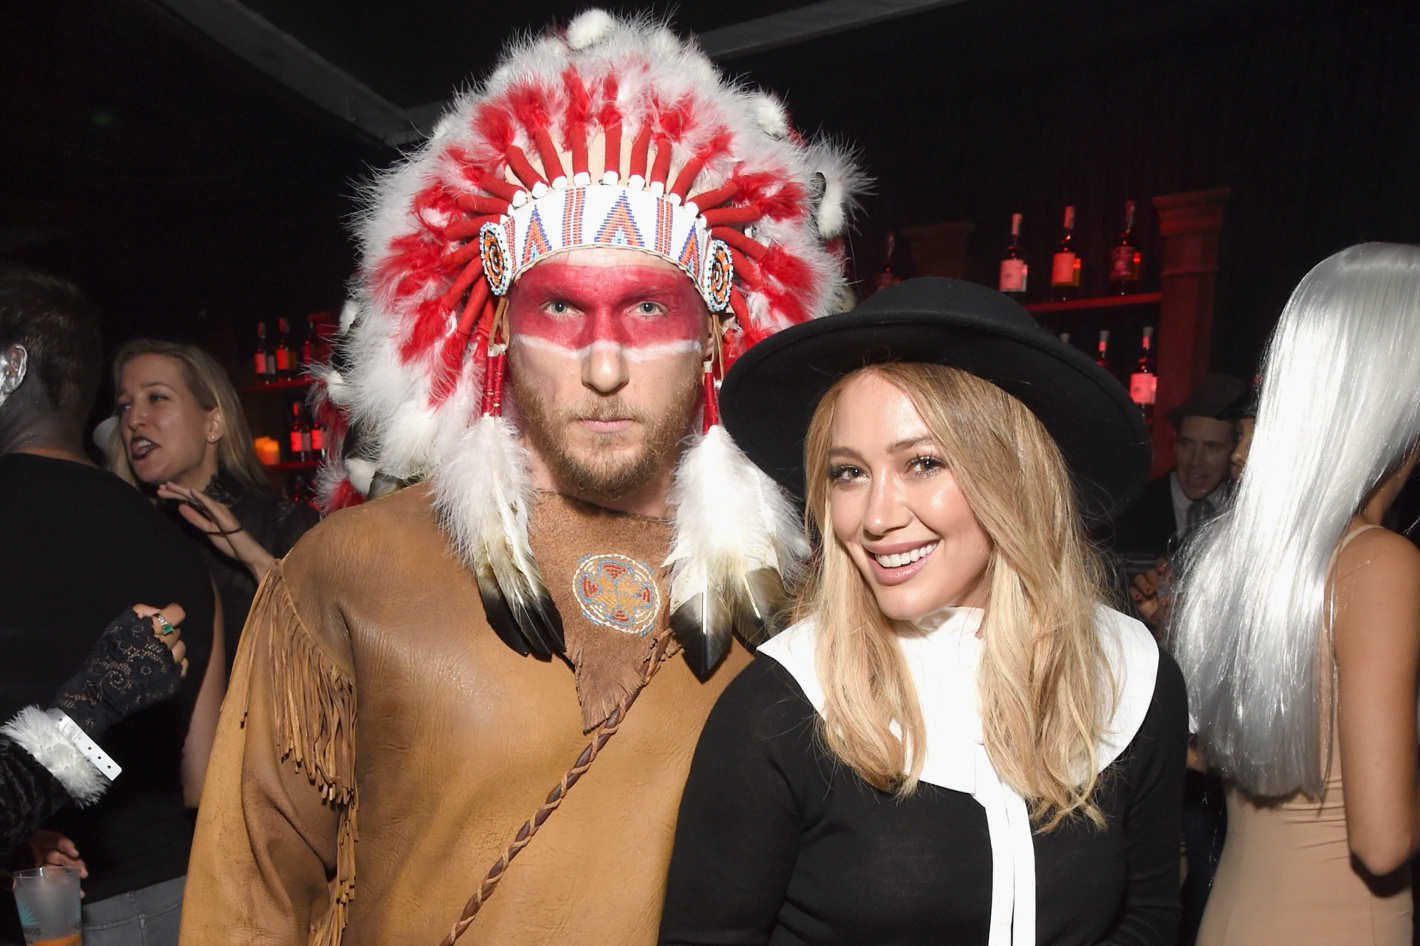 Native American Halloween Costumes Culturally Insensitive or Innocent Fun? - Character and Leadership  sc 1 st  Character and Leadership & Native American Halloween Costumes: Culturally Insensitive or ...